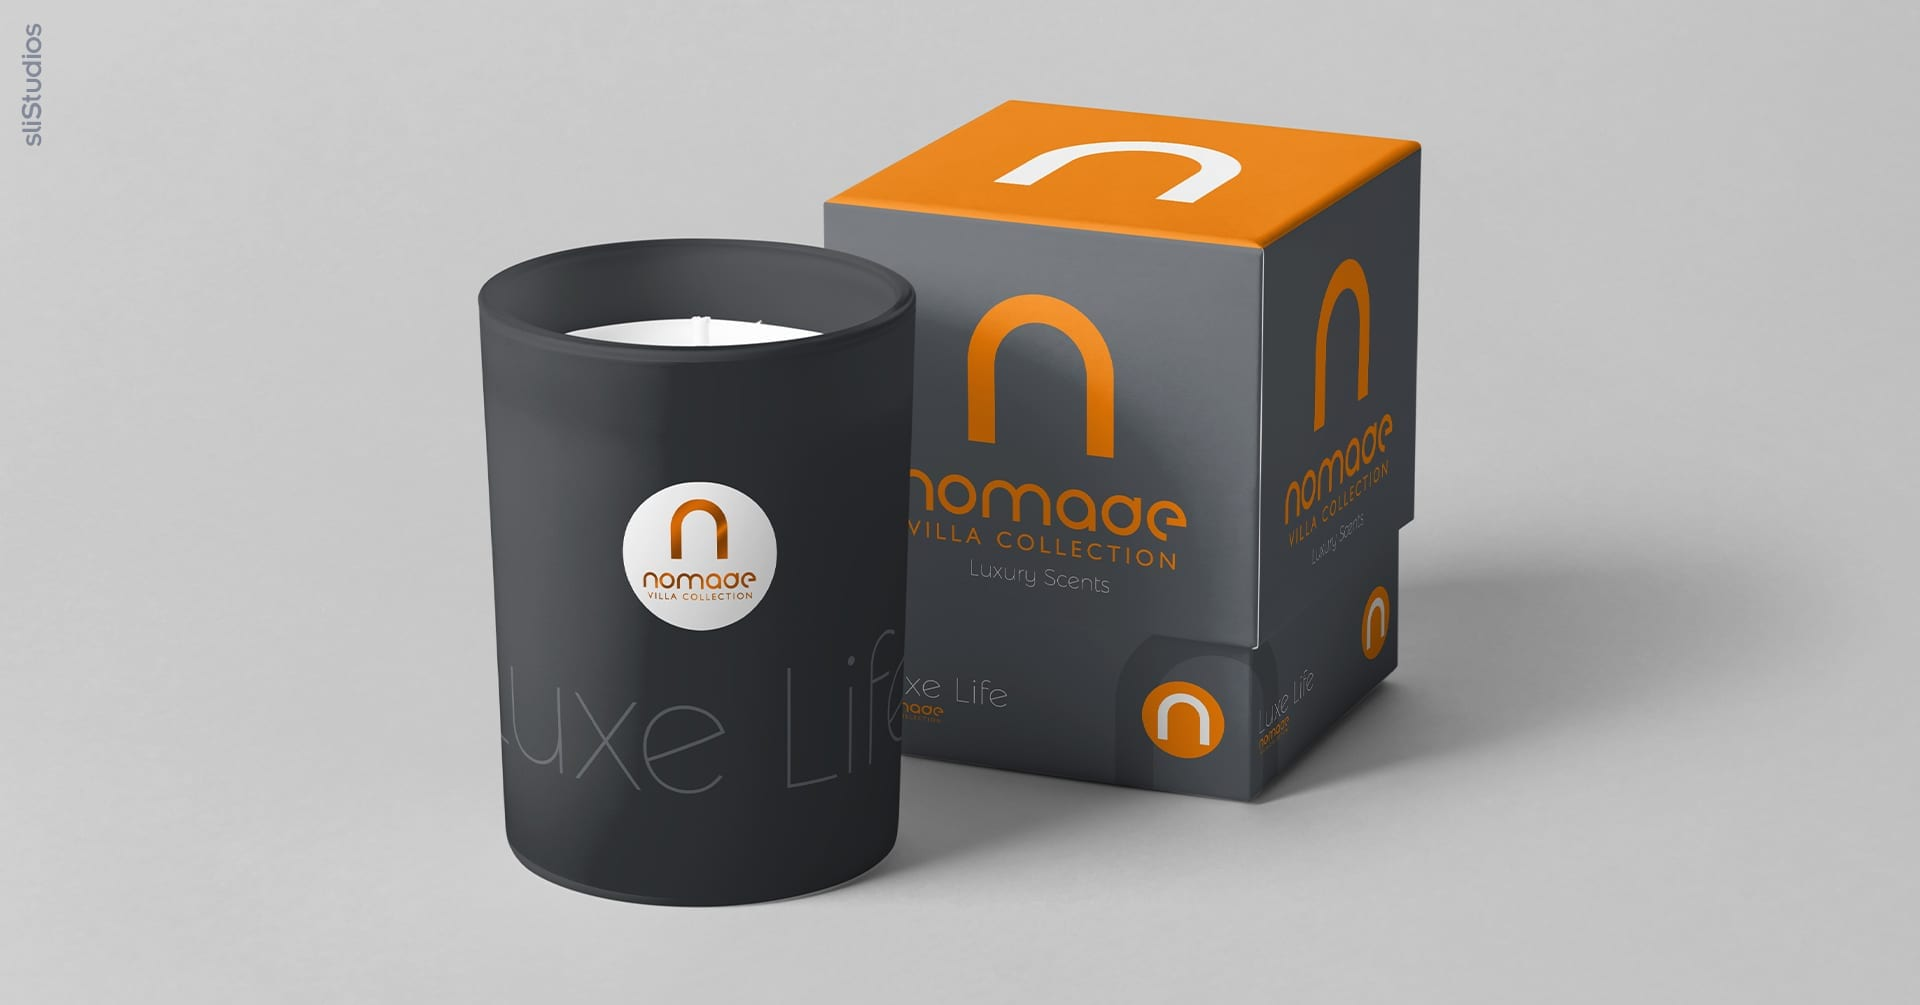 Custom Scent and Candle Product Design for Nomade Villa Collection | sliStudios Creative Design Agency in Miami